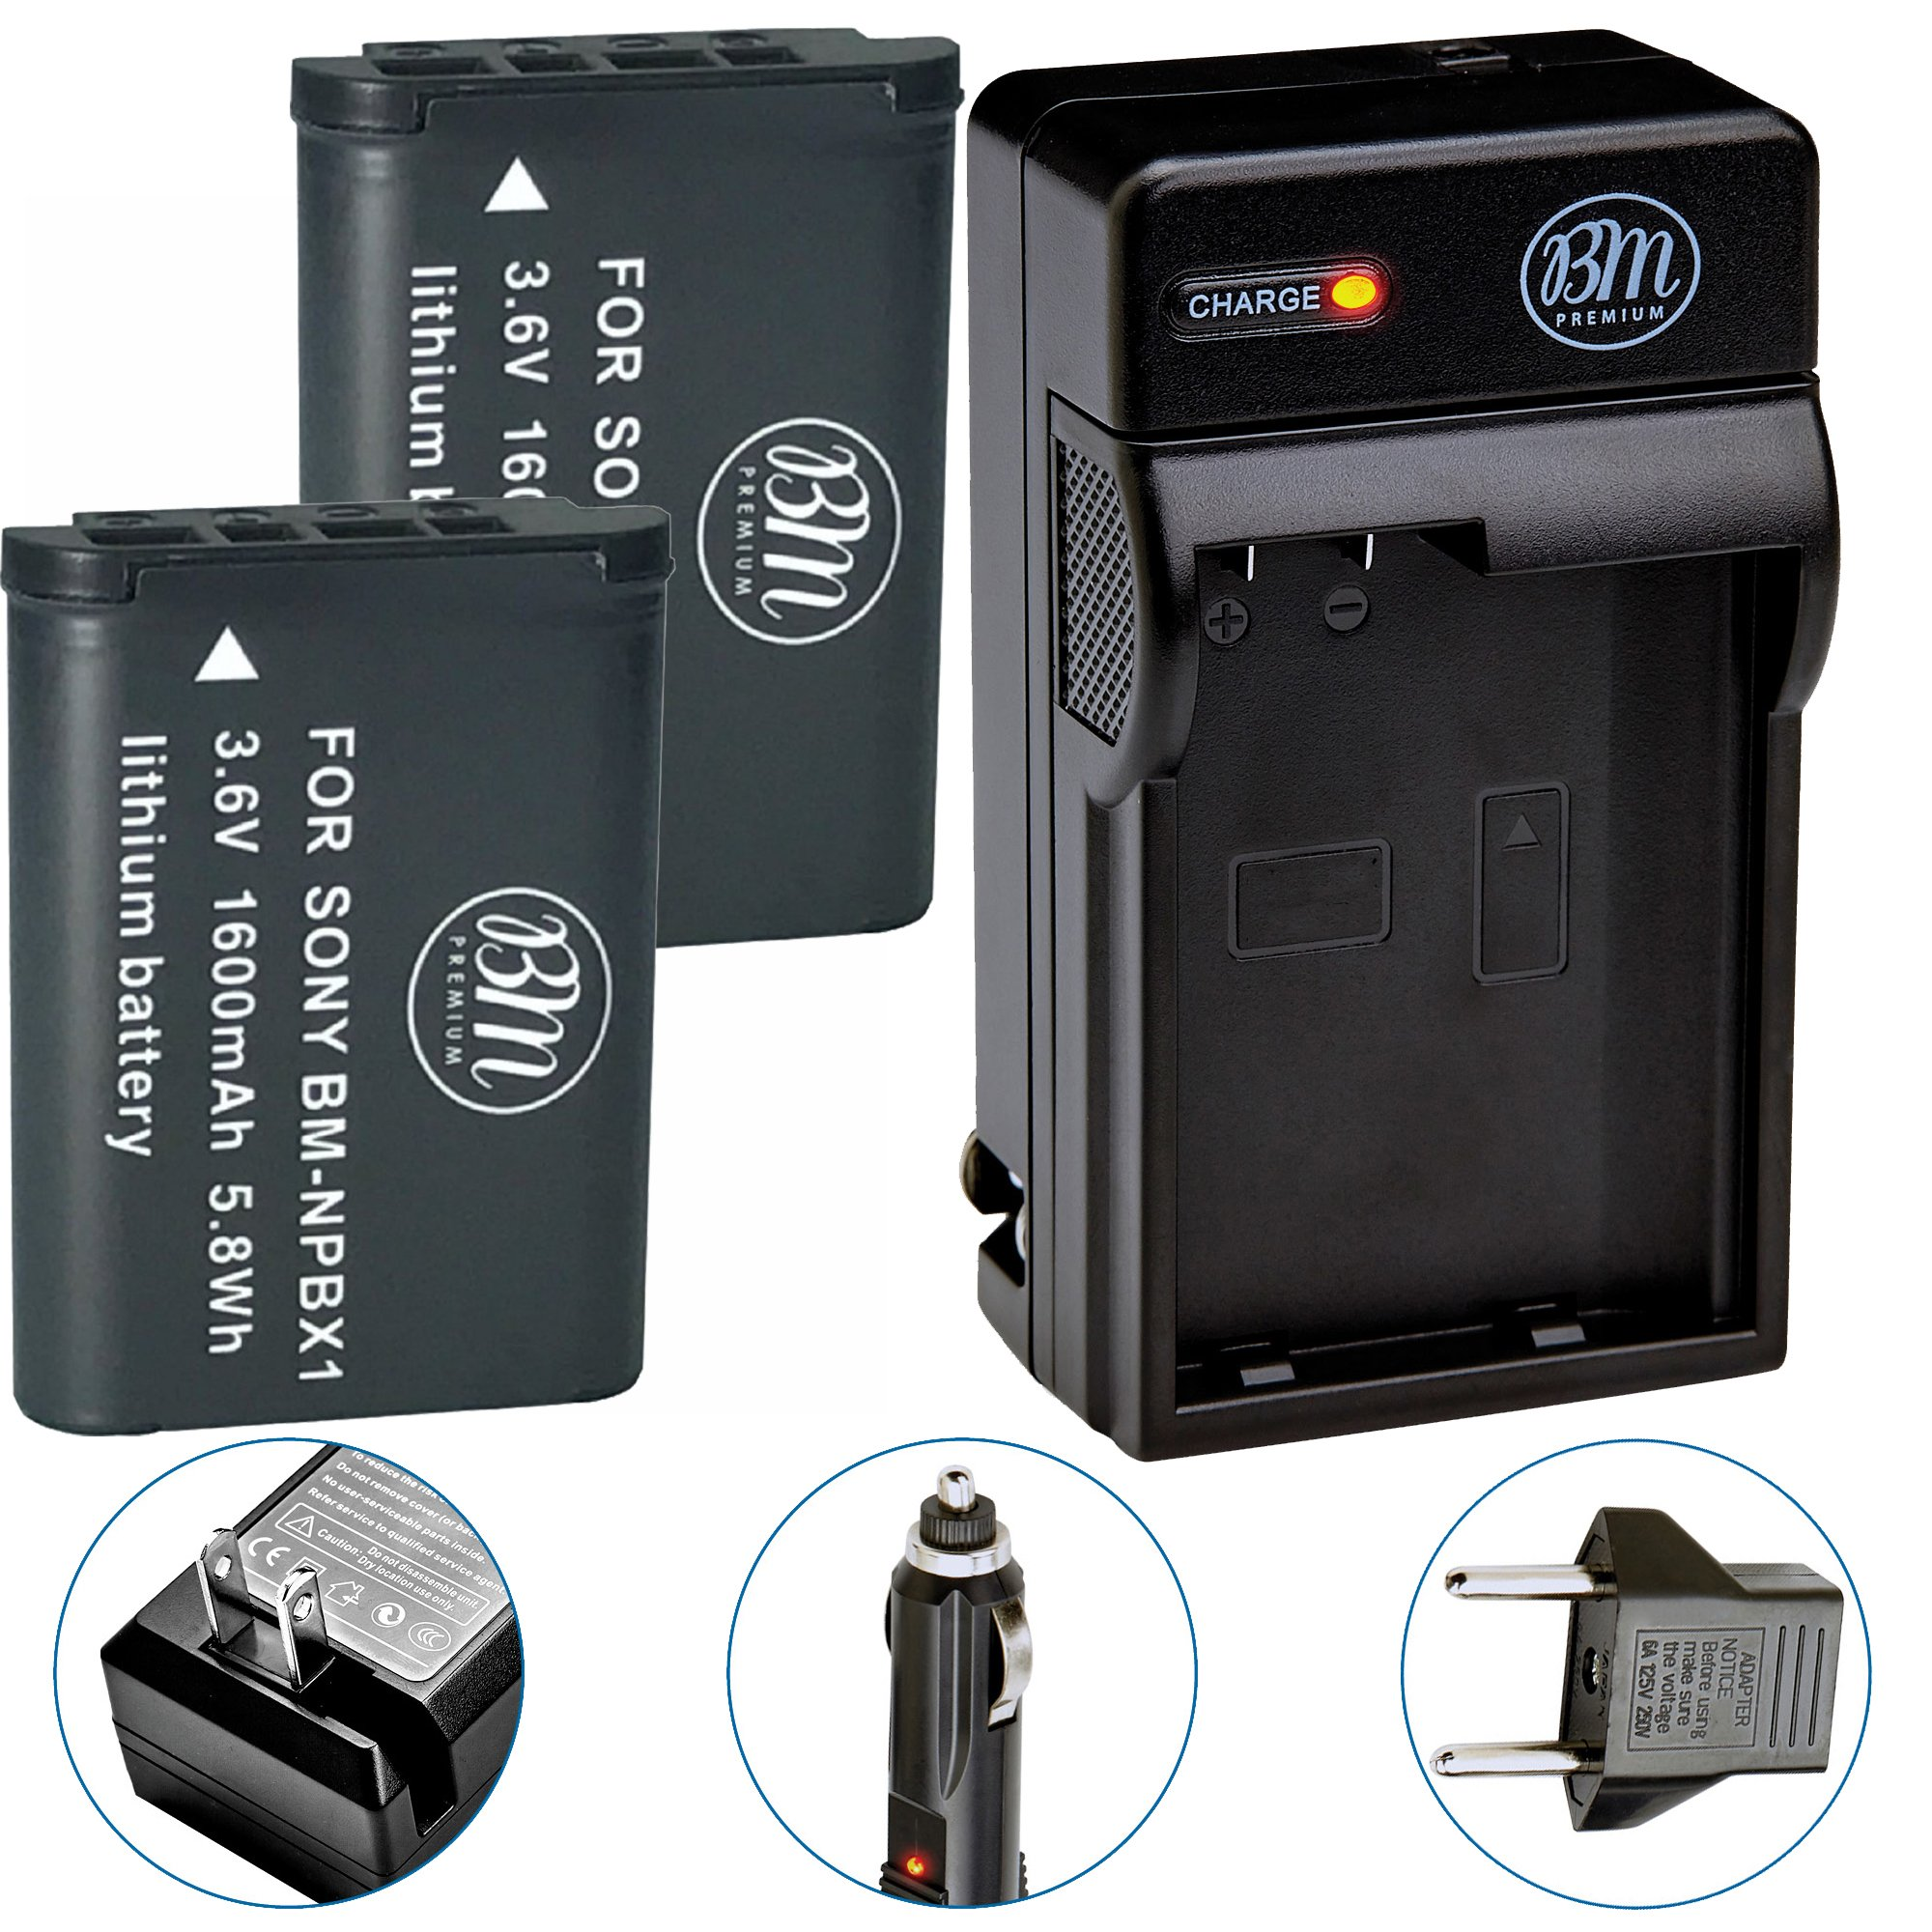 BM Premium 2 NP-BX1 NP-BX1/M8 Batteries and Charger for Sony CyberShot DSC-RX100, RX100 II, RX100 III, RX100 IV, RX100 V, RX100 VI, DSC-RX1R, RX1R II, HX50V, HX60V, HX80V, HX90V, WX300, WX350 Cameras